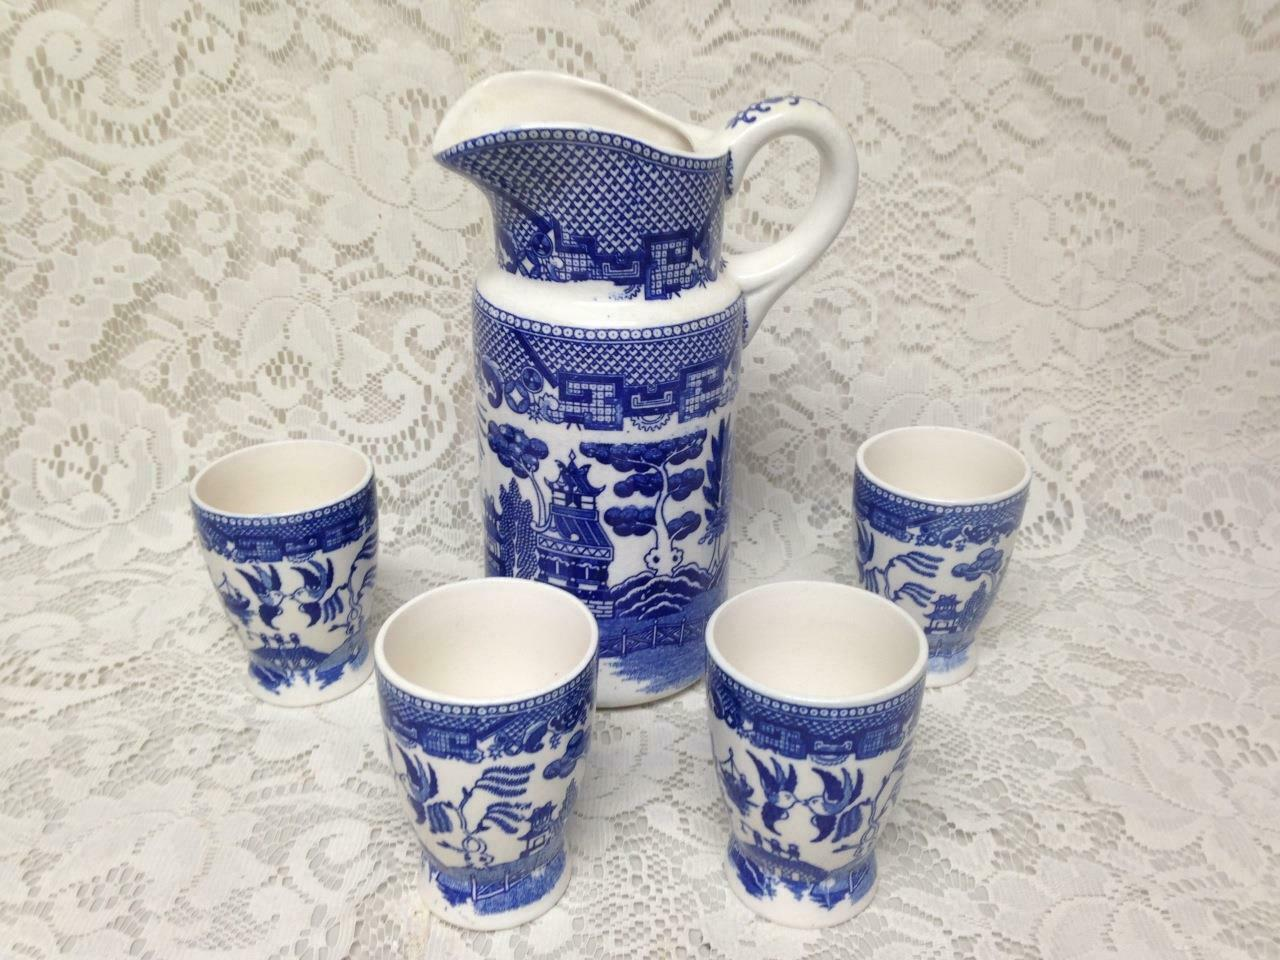 Primary image for Vintage, Japan, Blue Willow 5pc Juice-Iced Tea Set, 9in Pitcher, 3.5in Tumblers